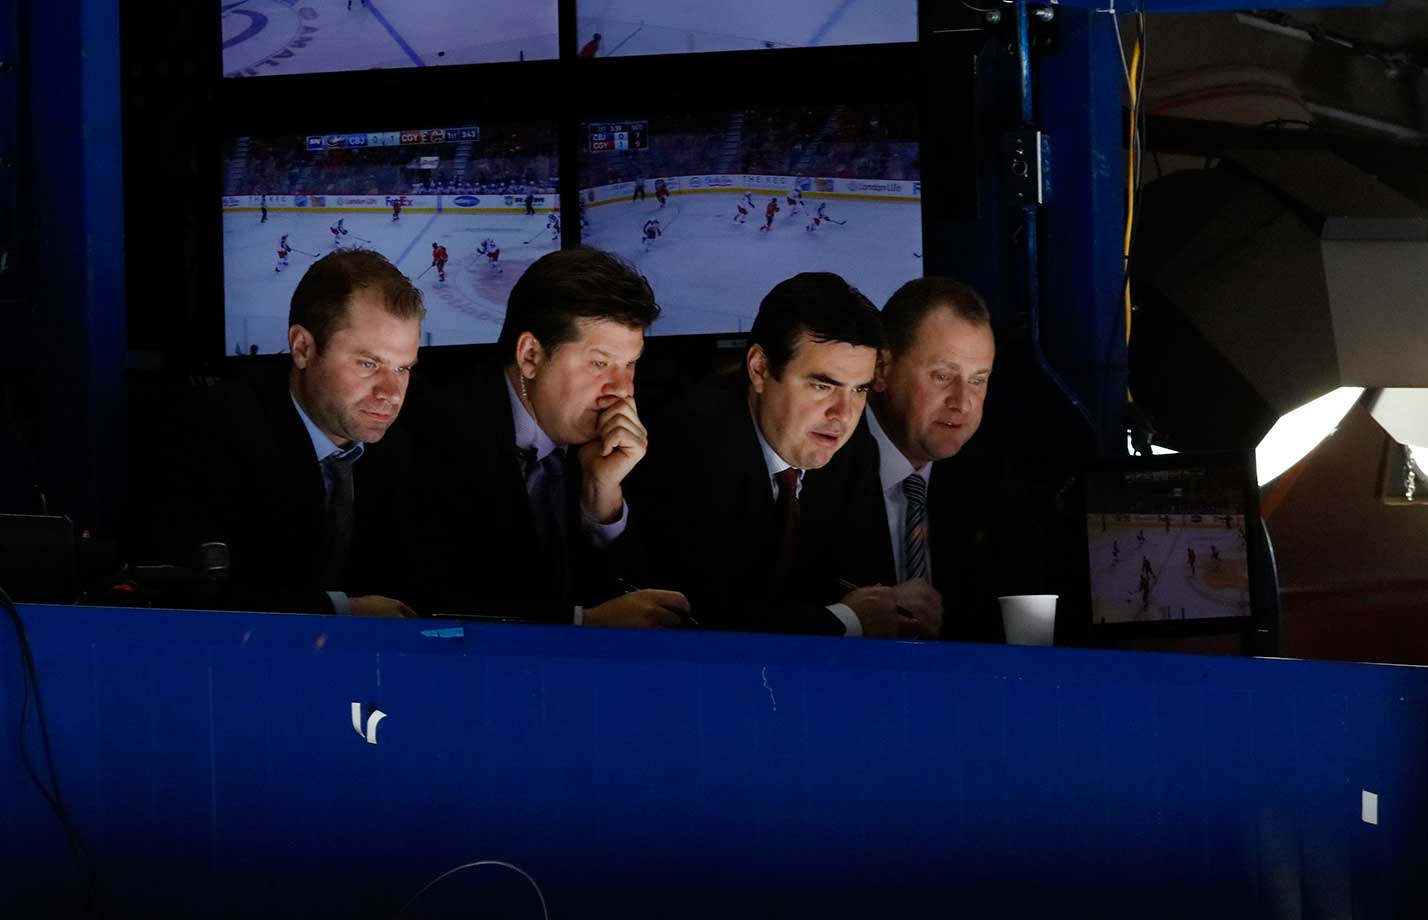 The Calgary Flames staff watches from the press box during the game against the Columbus Blue Jackets at Scotiabank Saddledome in Alberta.